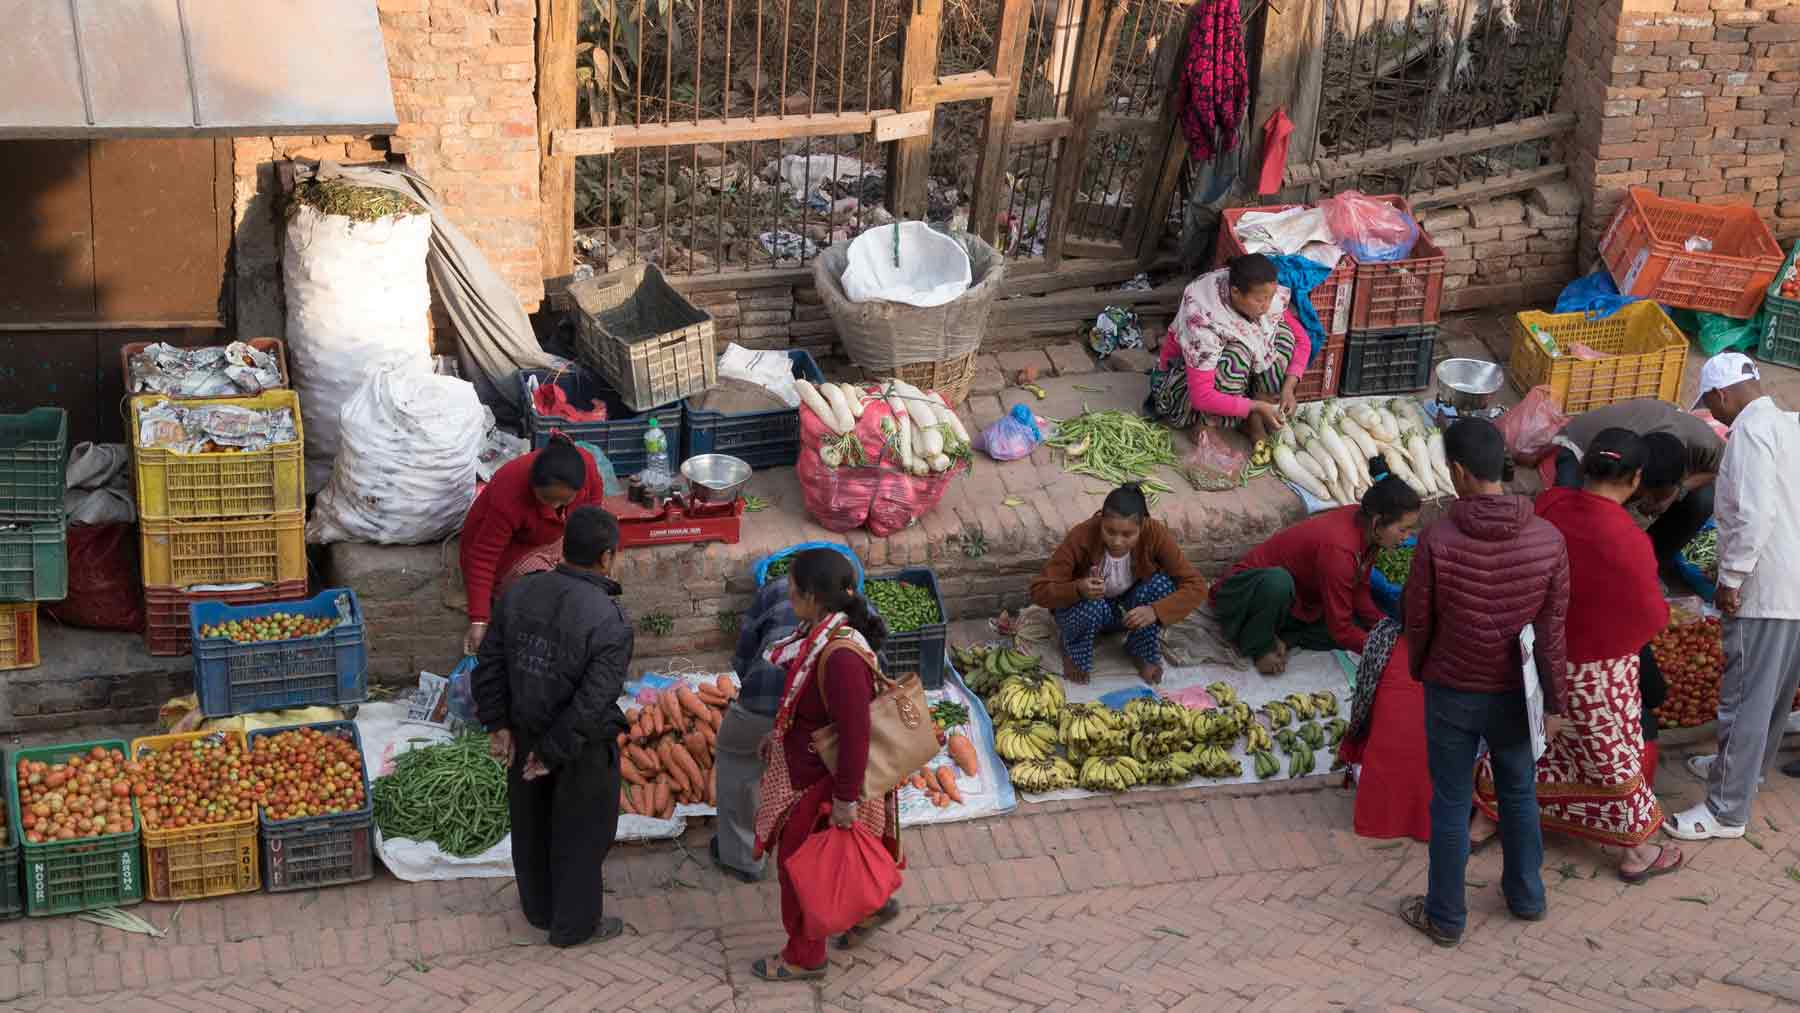 Group discussing the vegetables for sale in the square in Bhaktapur Nepal